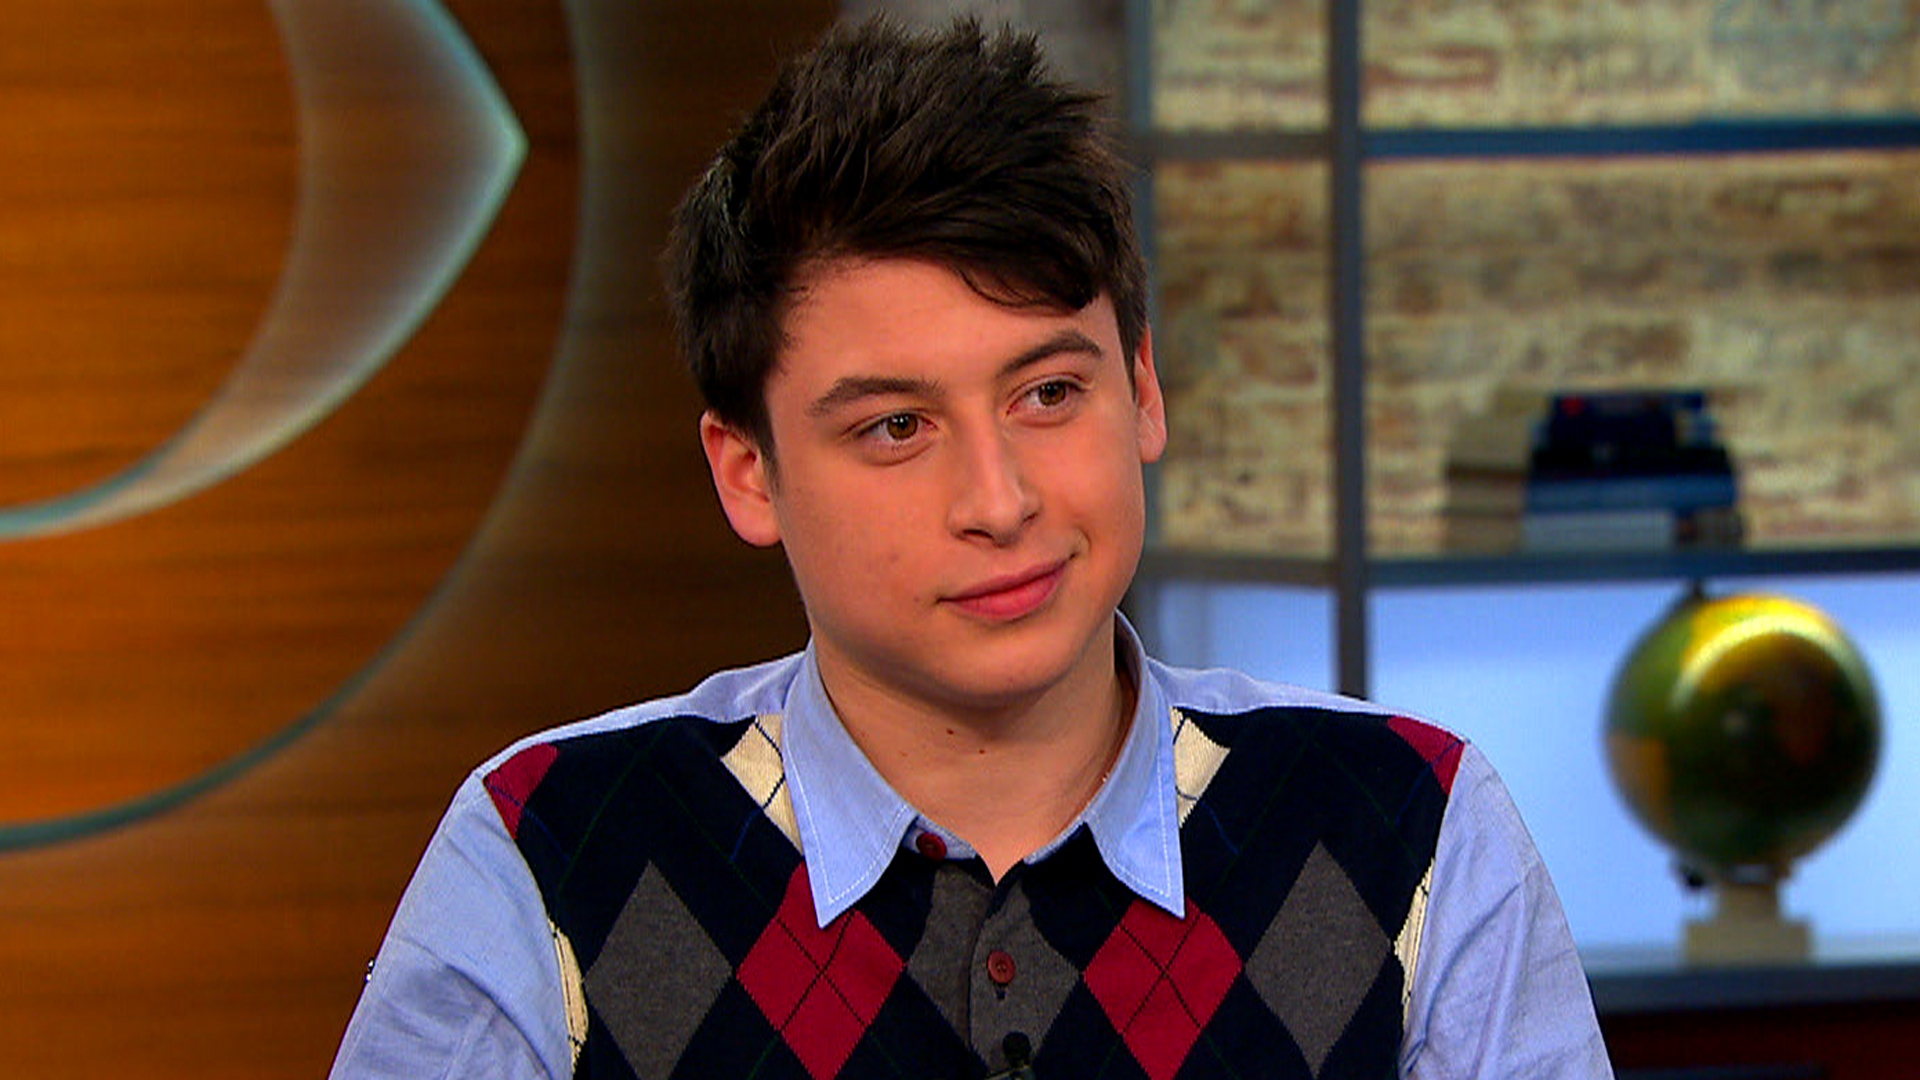 Teen founder of Summly discusses consuming news